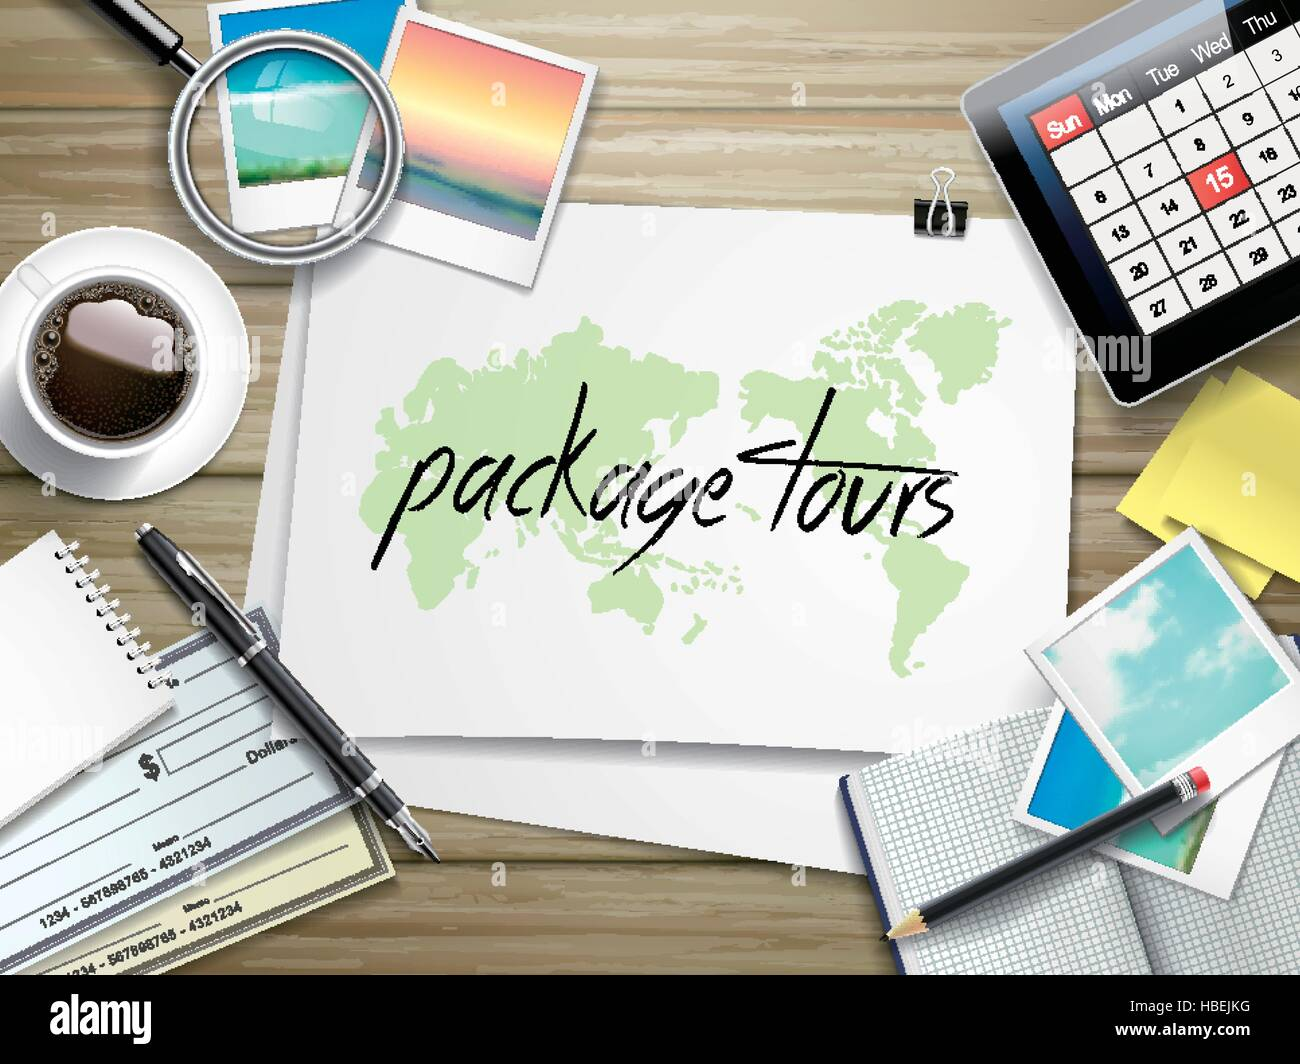 top view of travel items on wooden table with package tours written on paper - Stock Vector